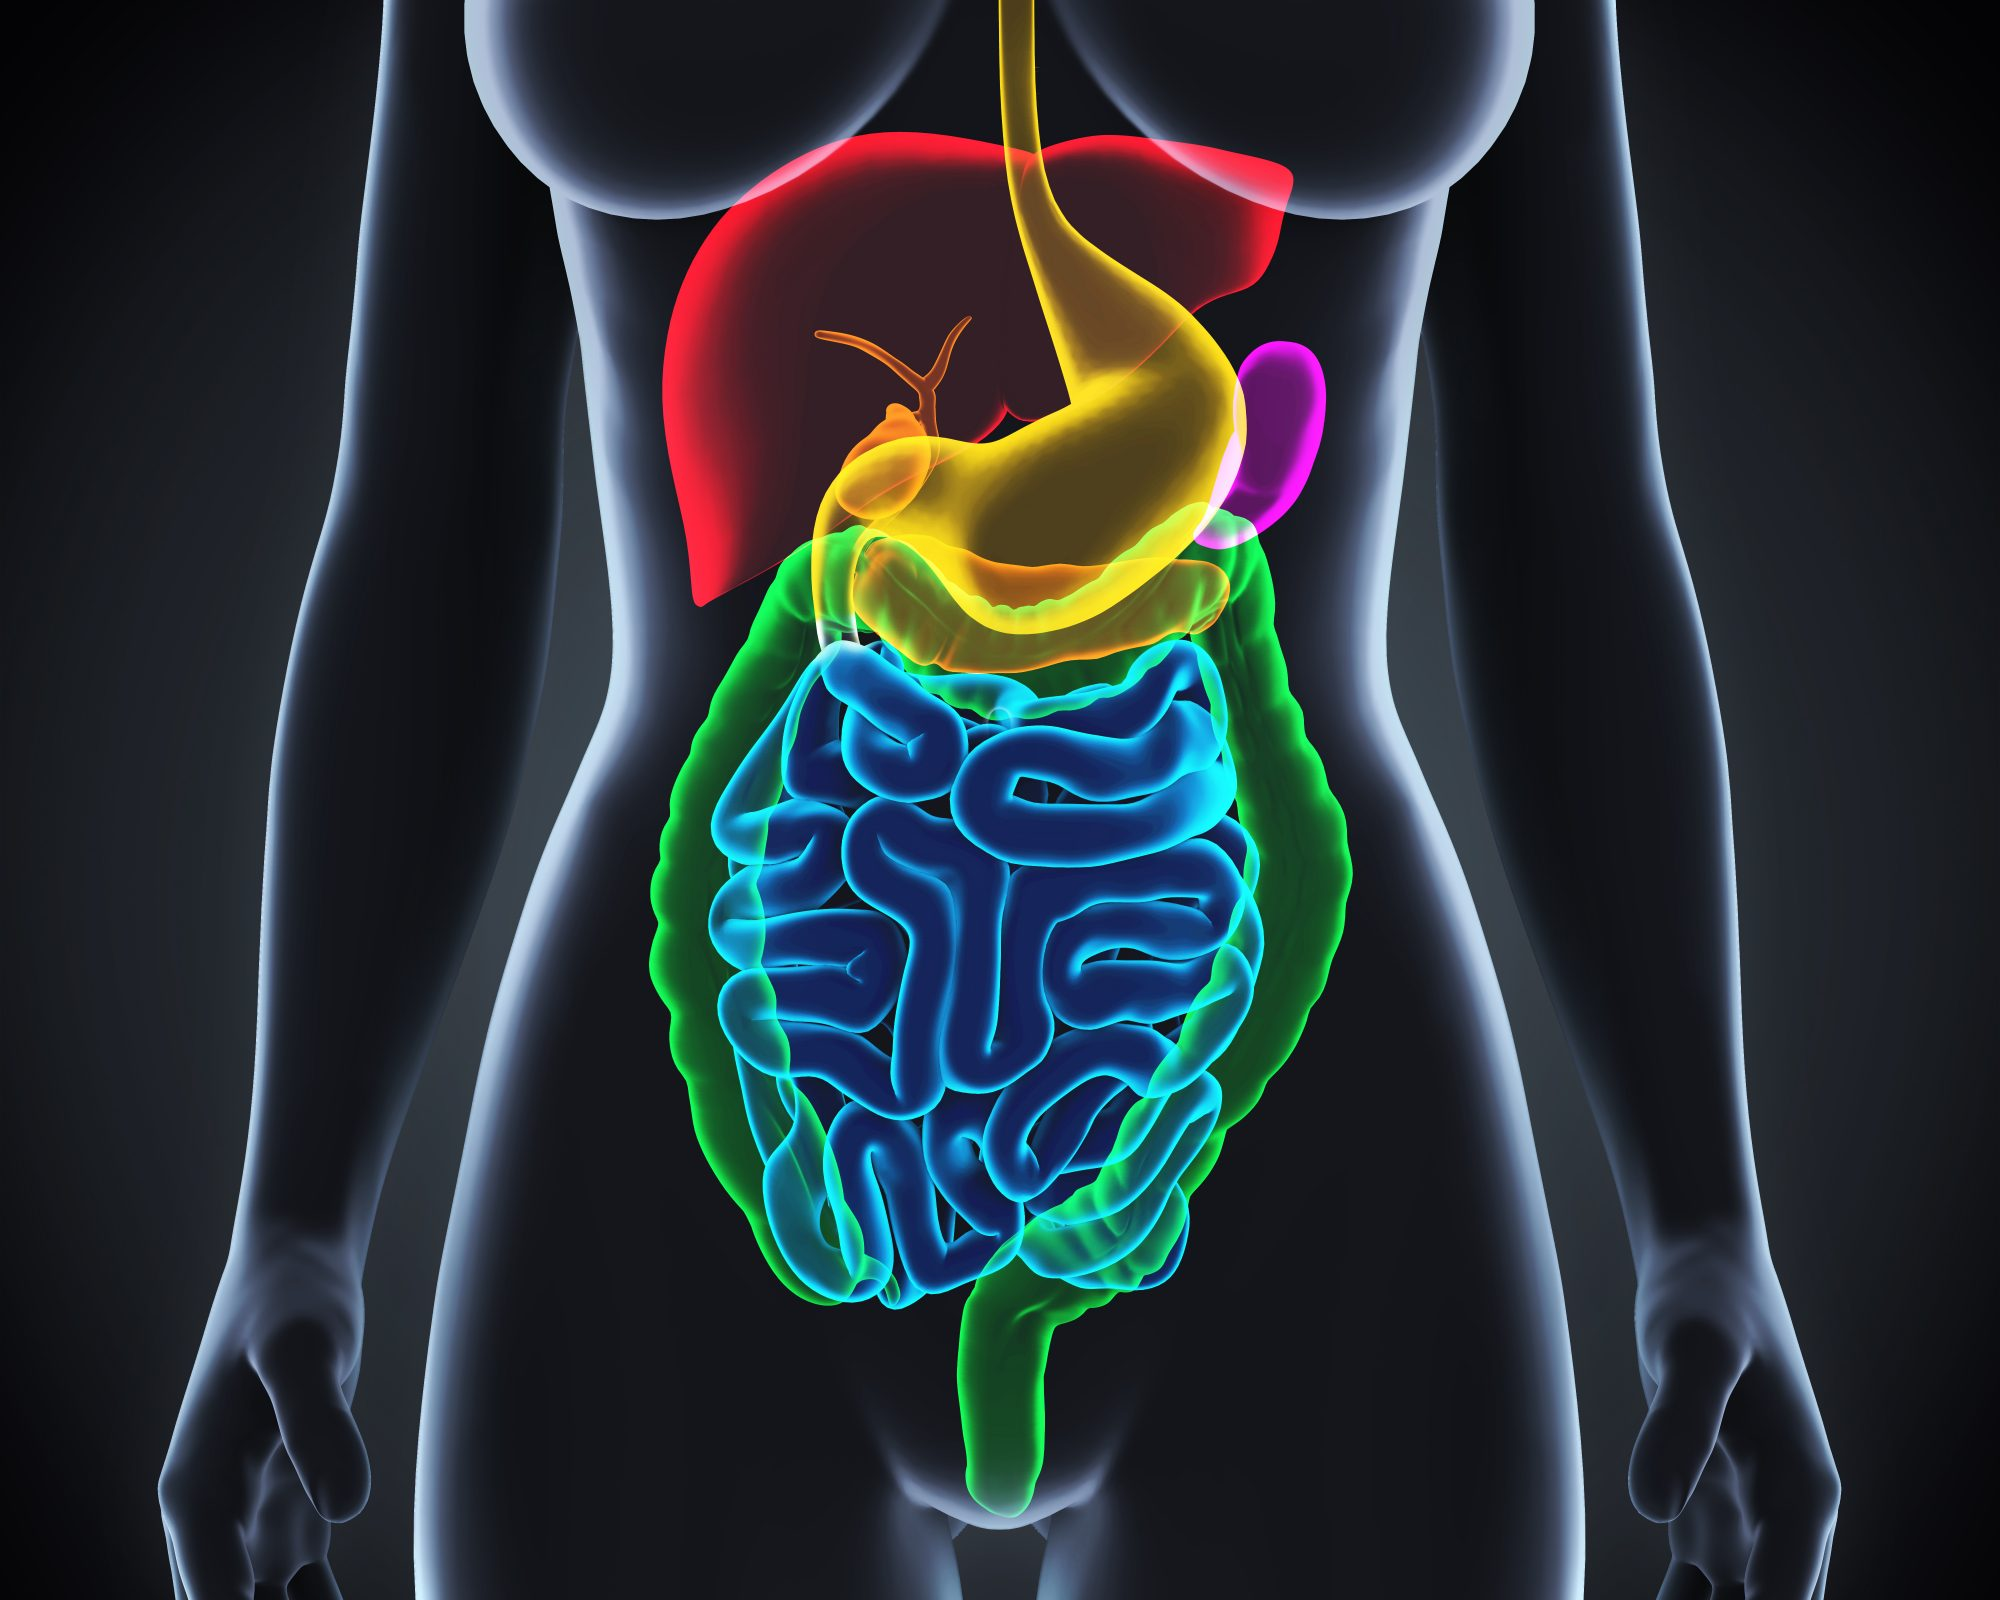 gastroparesis-intestines-stomach-nauseous